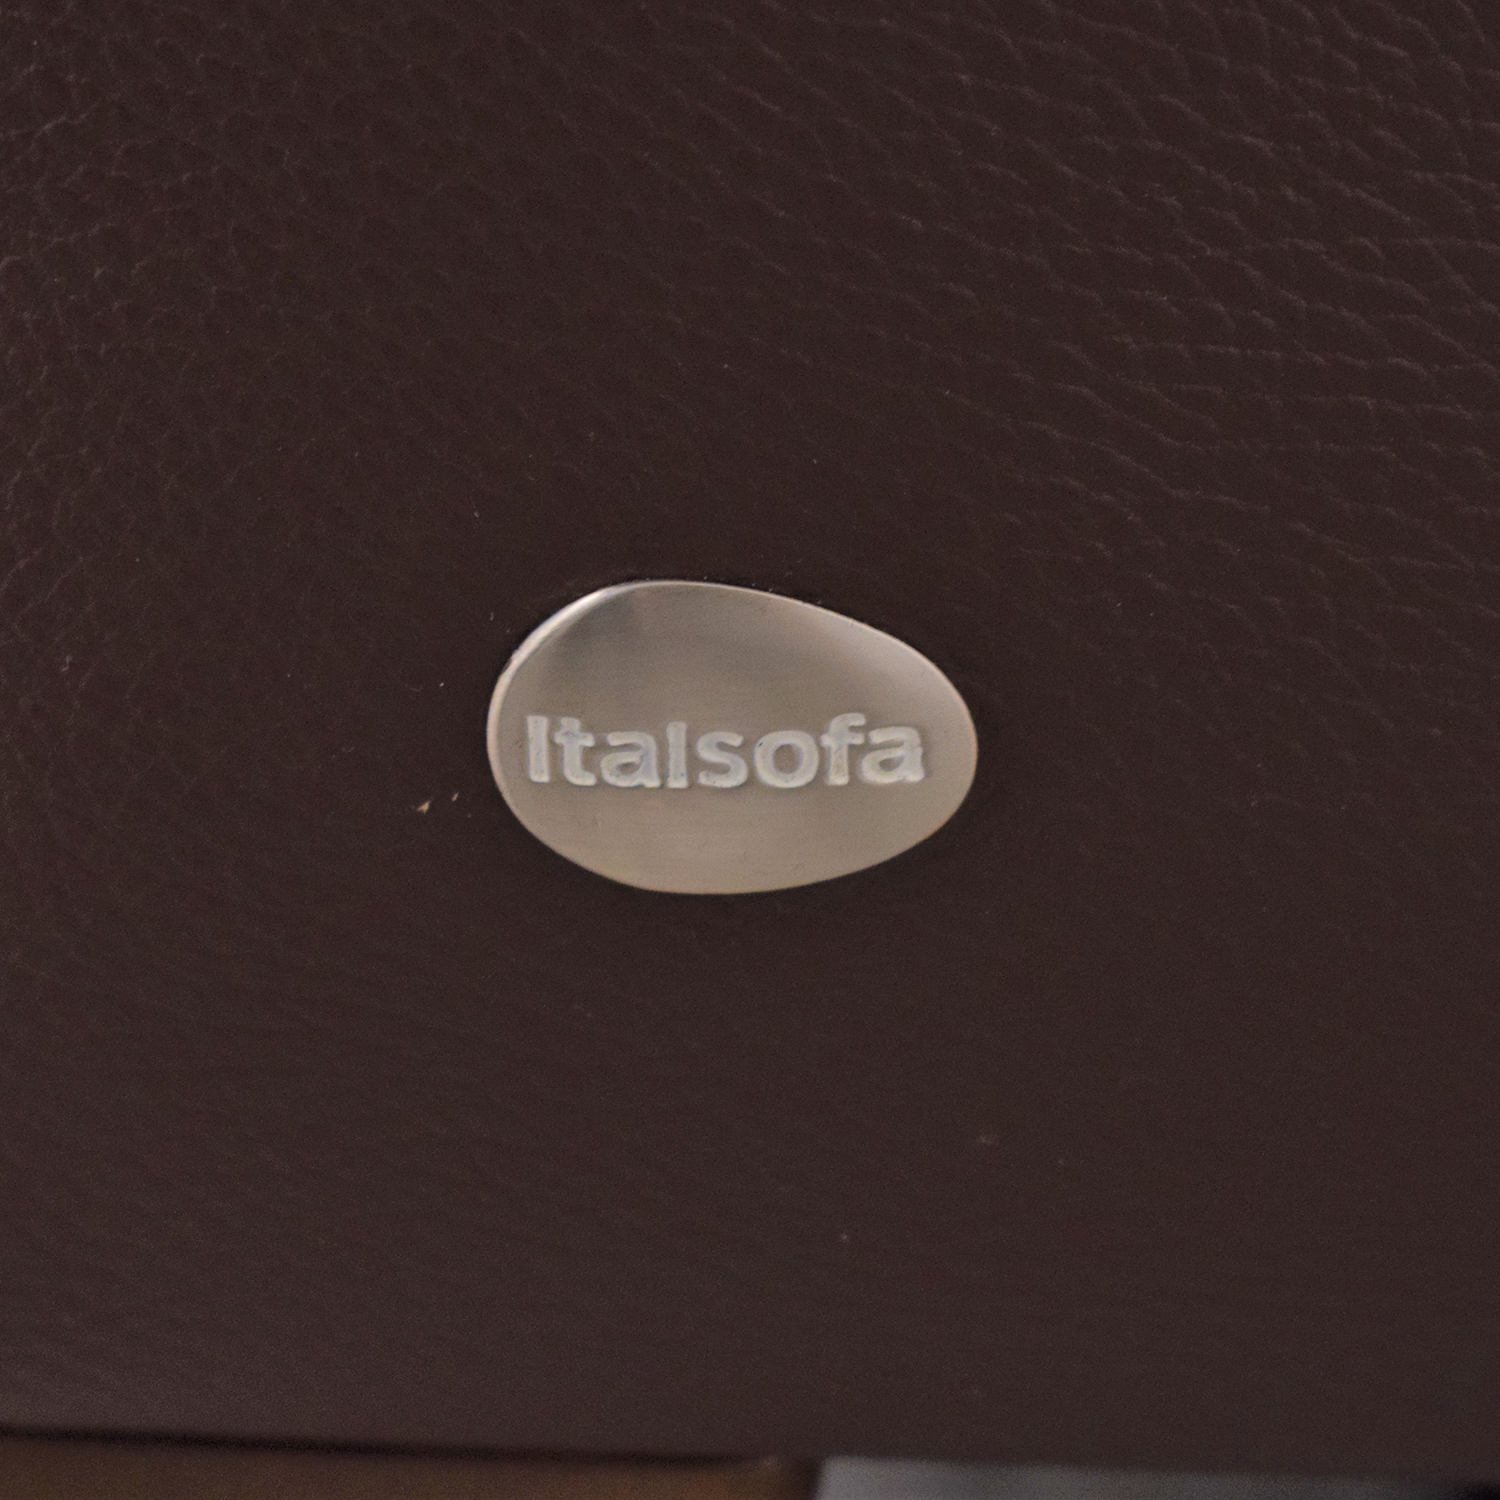 Italsofa Italsofa Sectional Sleeper Sofa with Chaise coupon